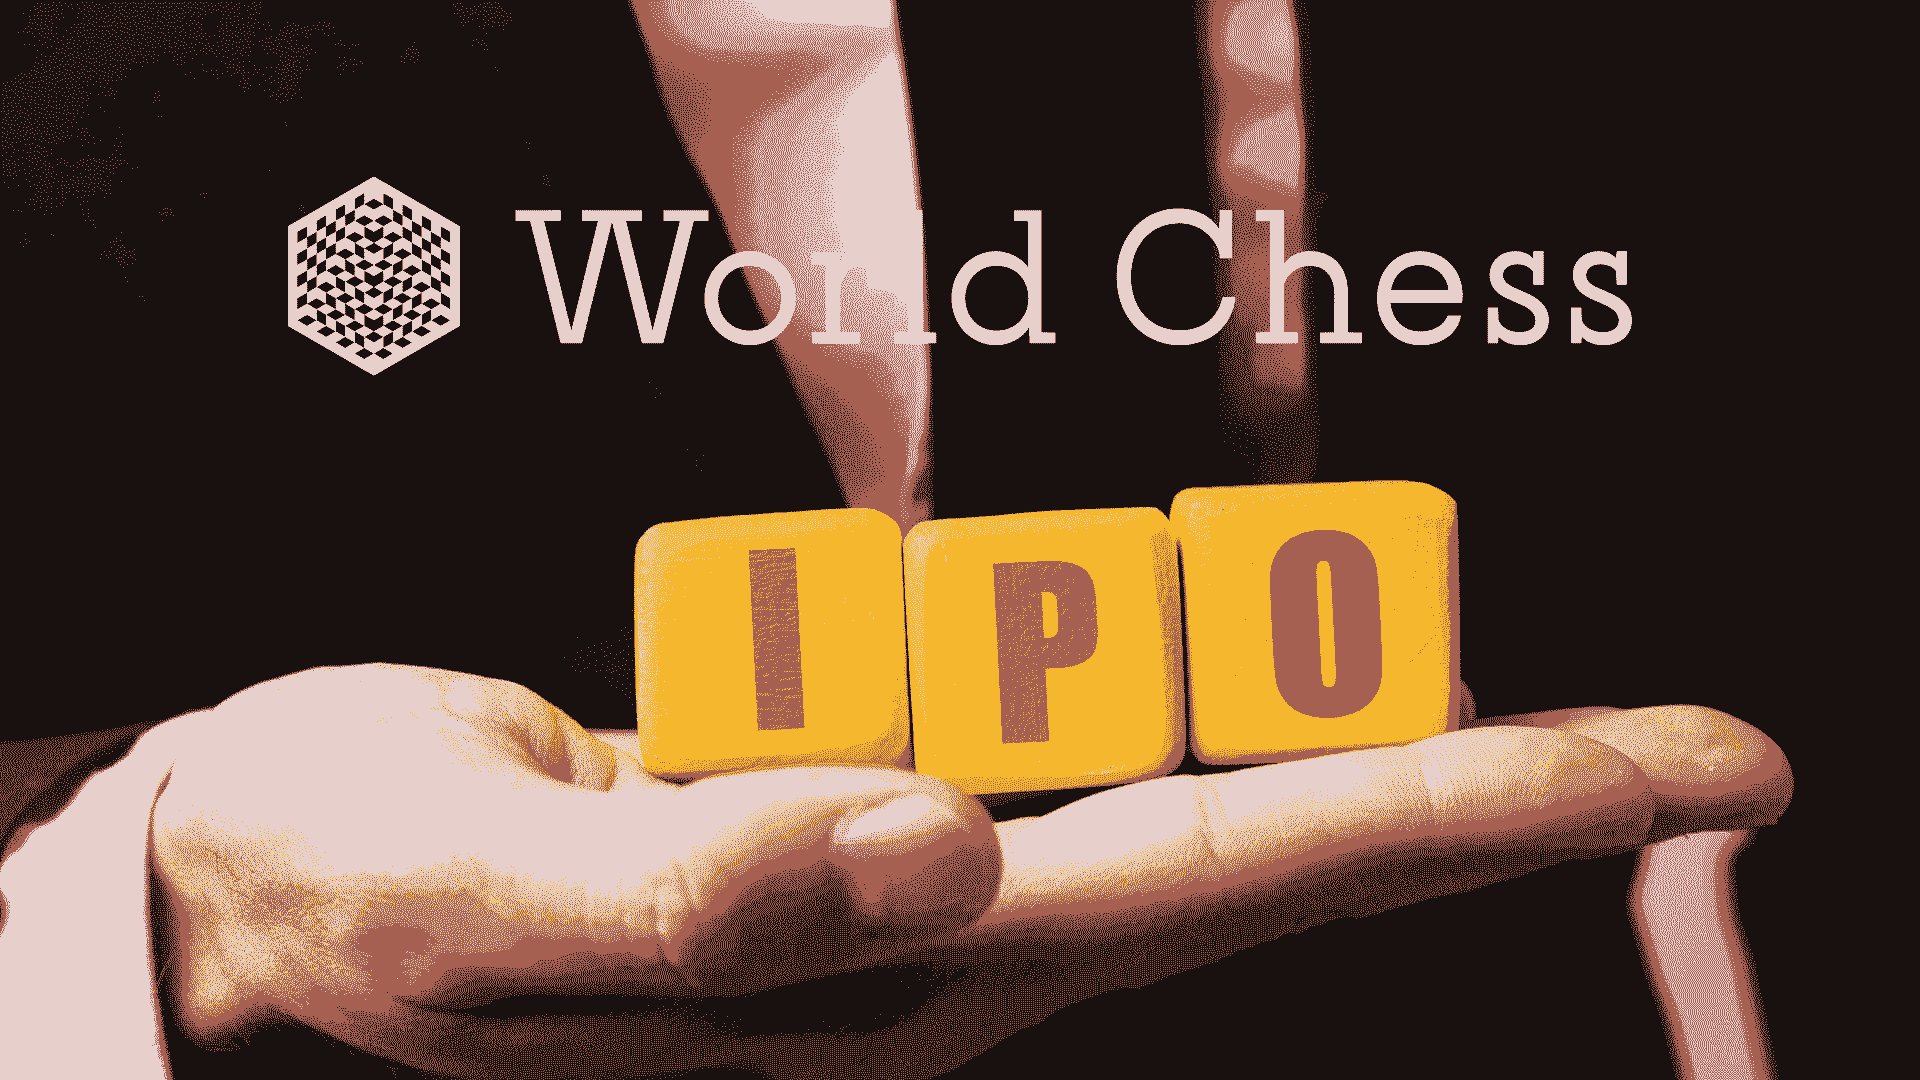 World Chess to Host Hybrid IPO through Securitize Algorand